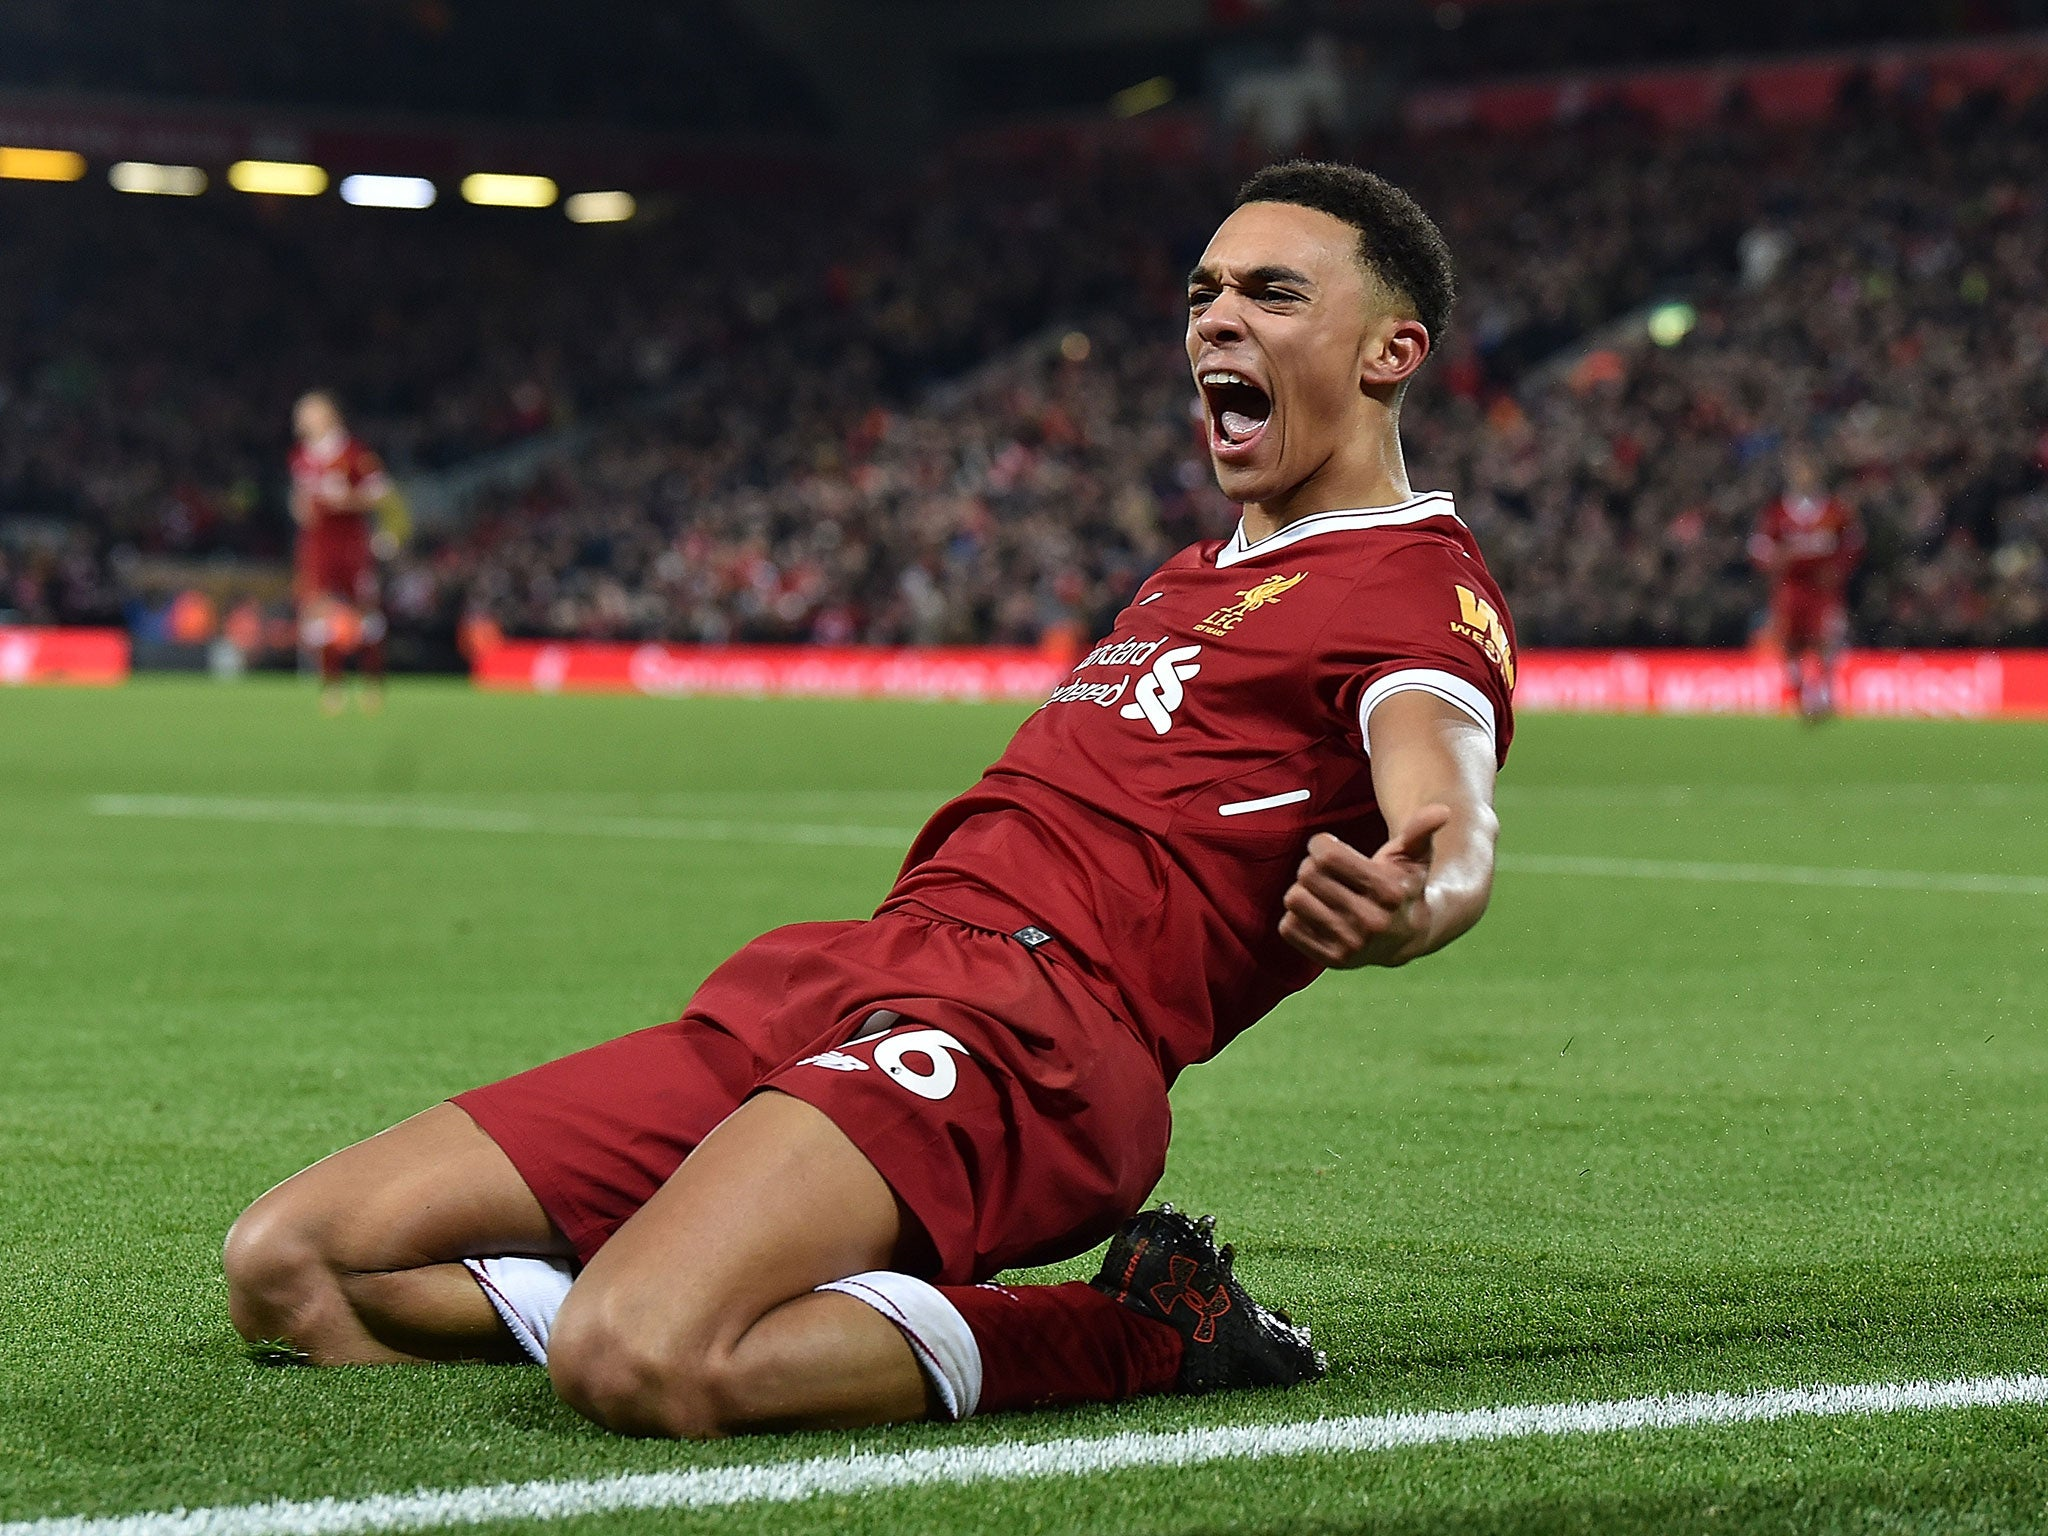 c1dbed8616f4 Any lover of football would know the English professional footballer Trent  Alexander-Arnold